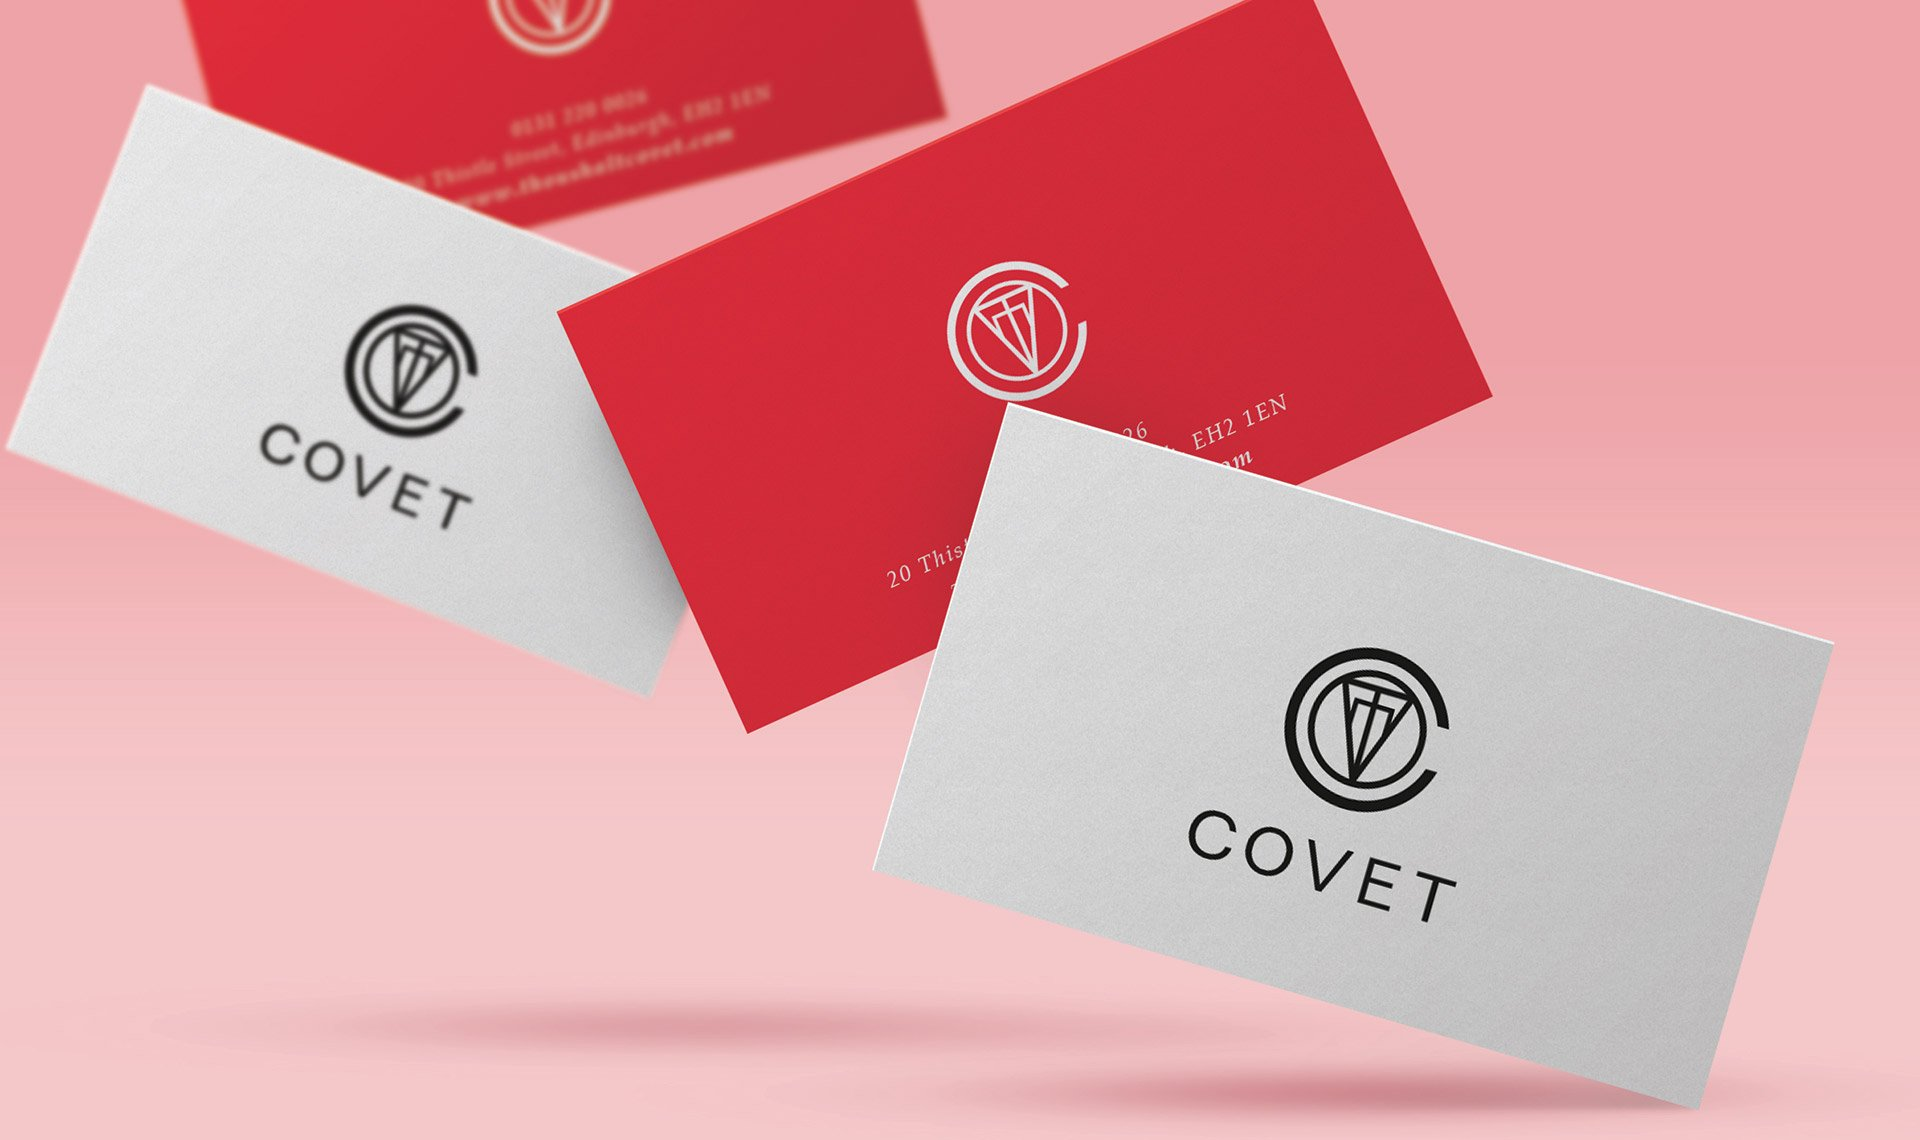 Cover business cards